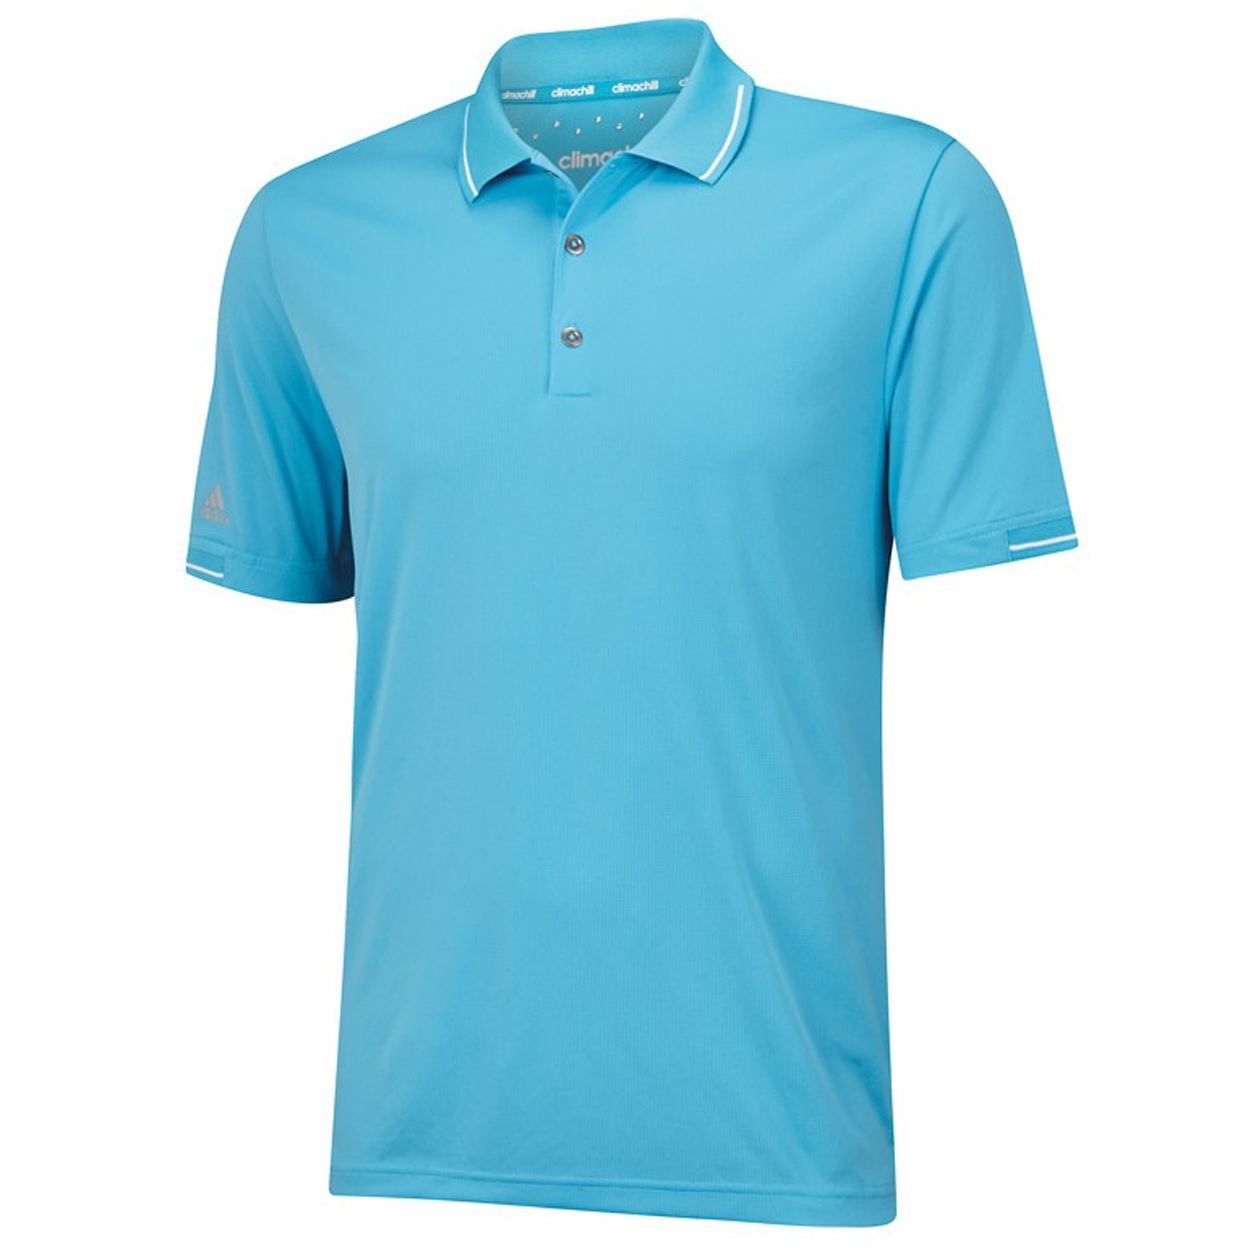 Adidas Golf Men 39 S Climachill Solid Polo Shirt Brand New